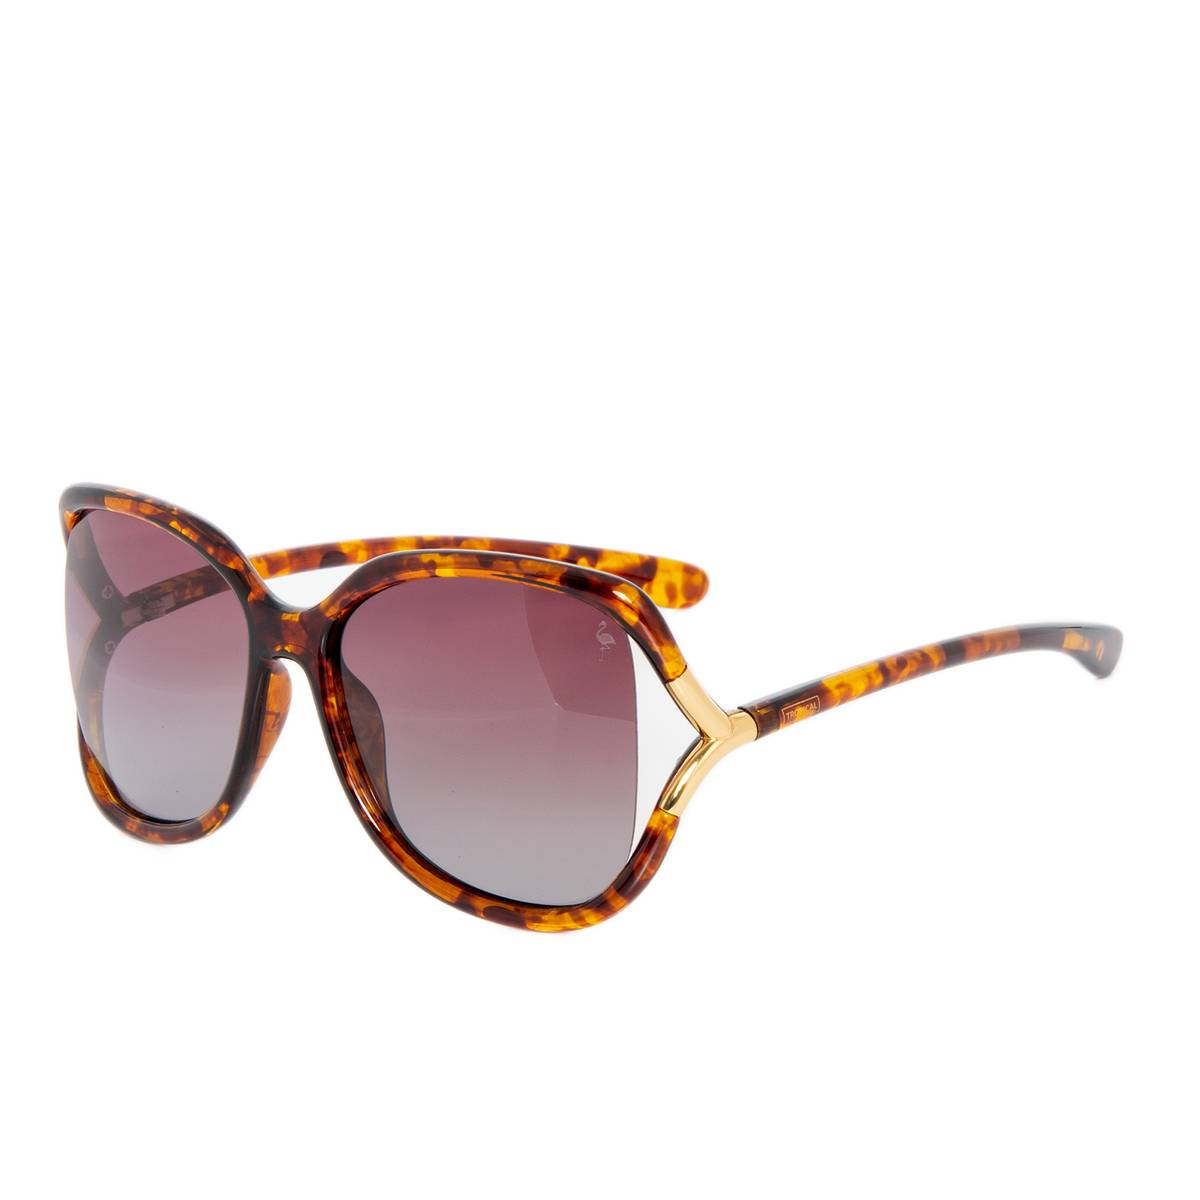 St. Tropez Vibes - Tortoise/Brown Faded